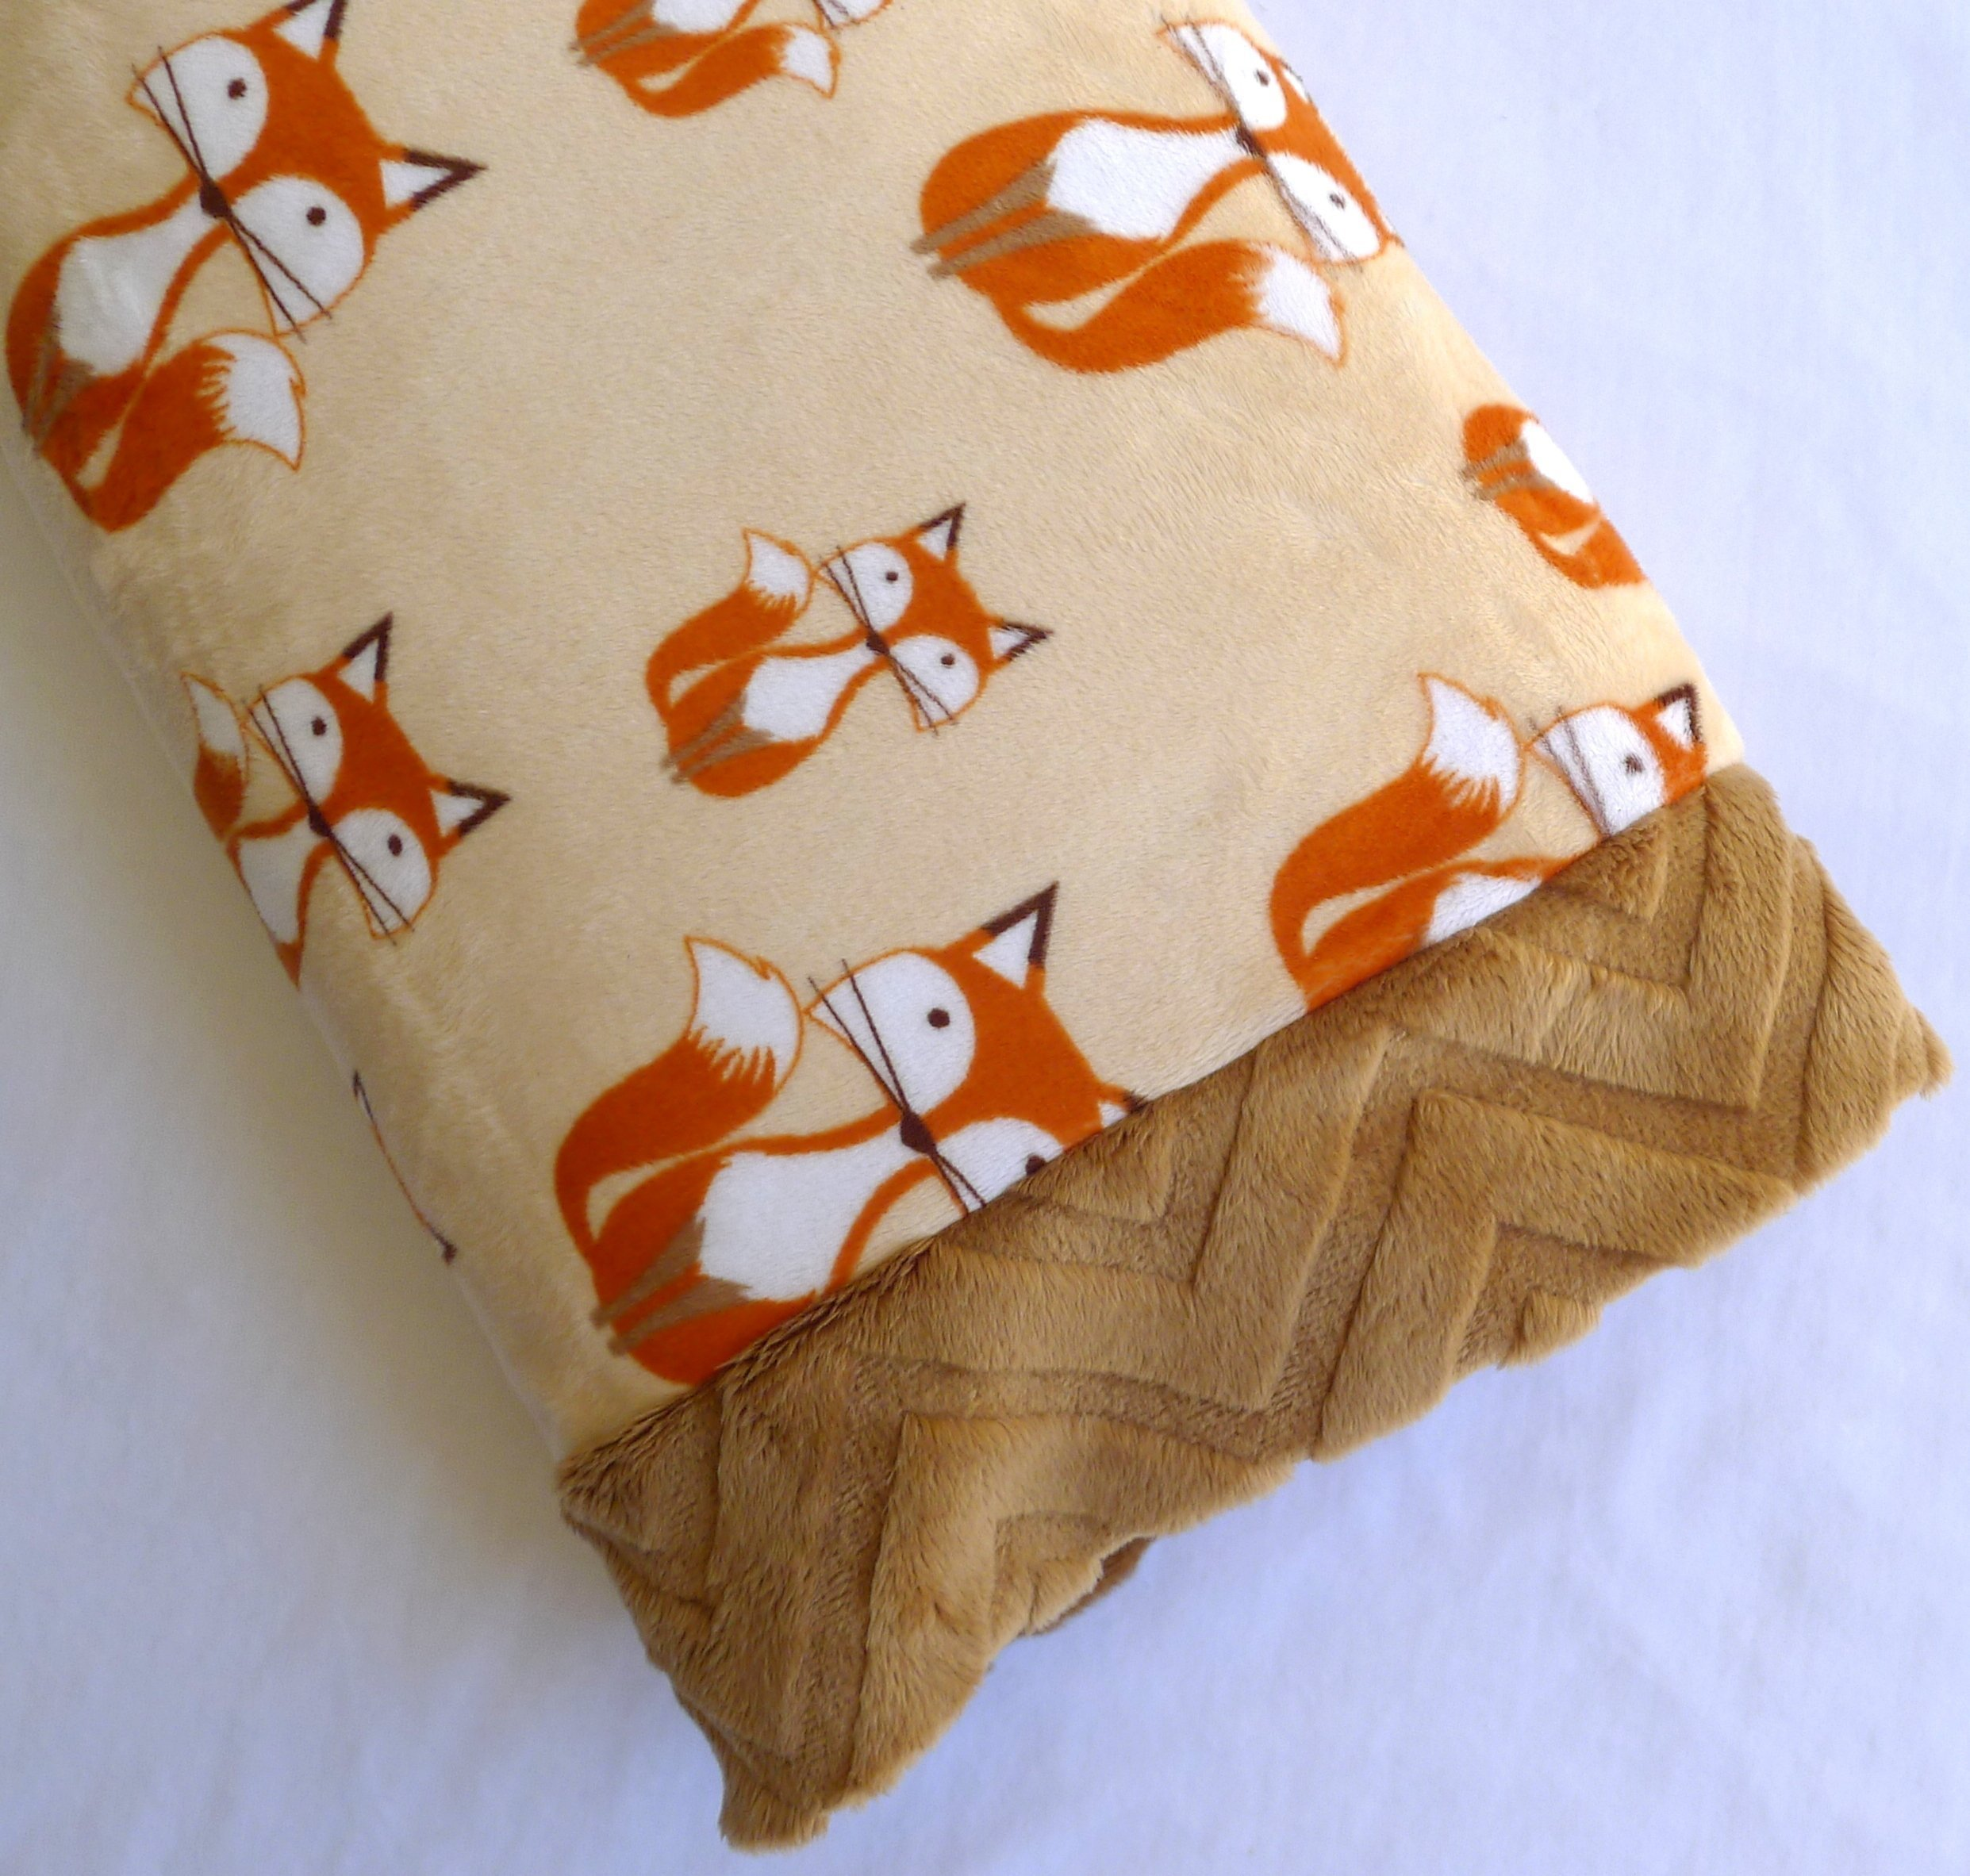 Toddler Pillowcase - Fox Bedding - Made by Sugar Doodle Boutique - Pillow 12 X 16 - Minky - Made in USA!